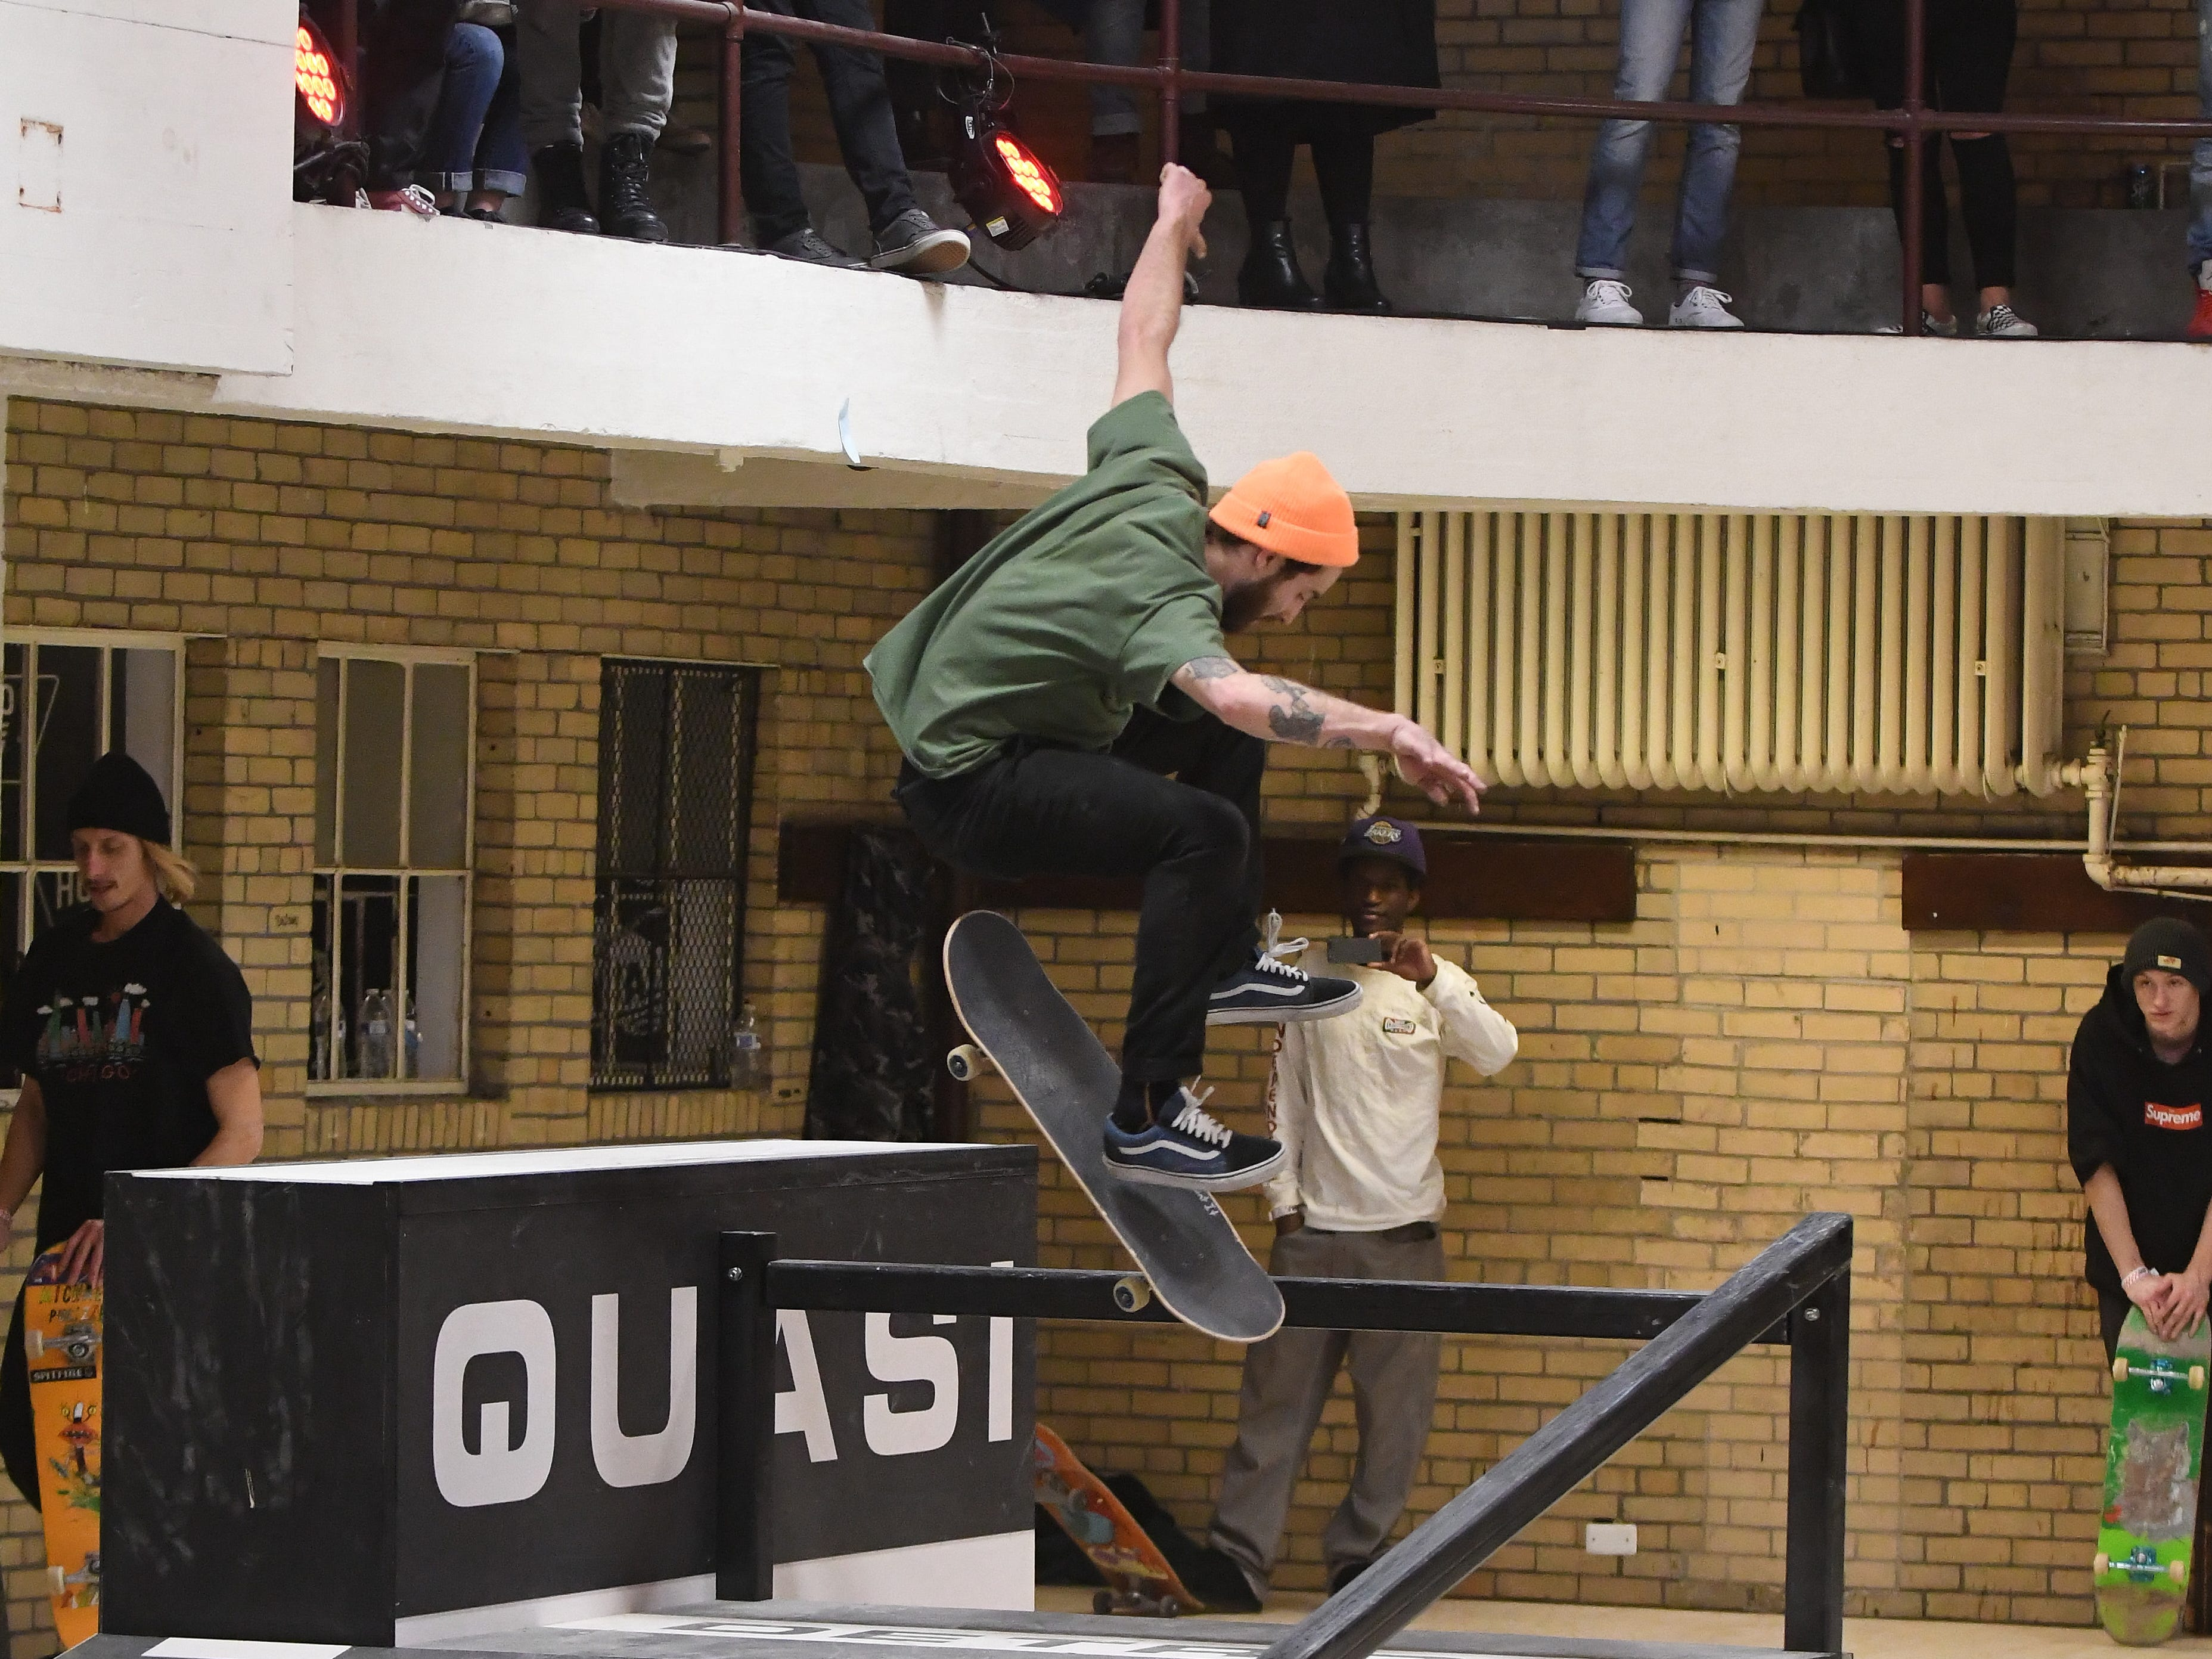 A skate park at the House of Vans pop-up.